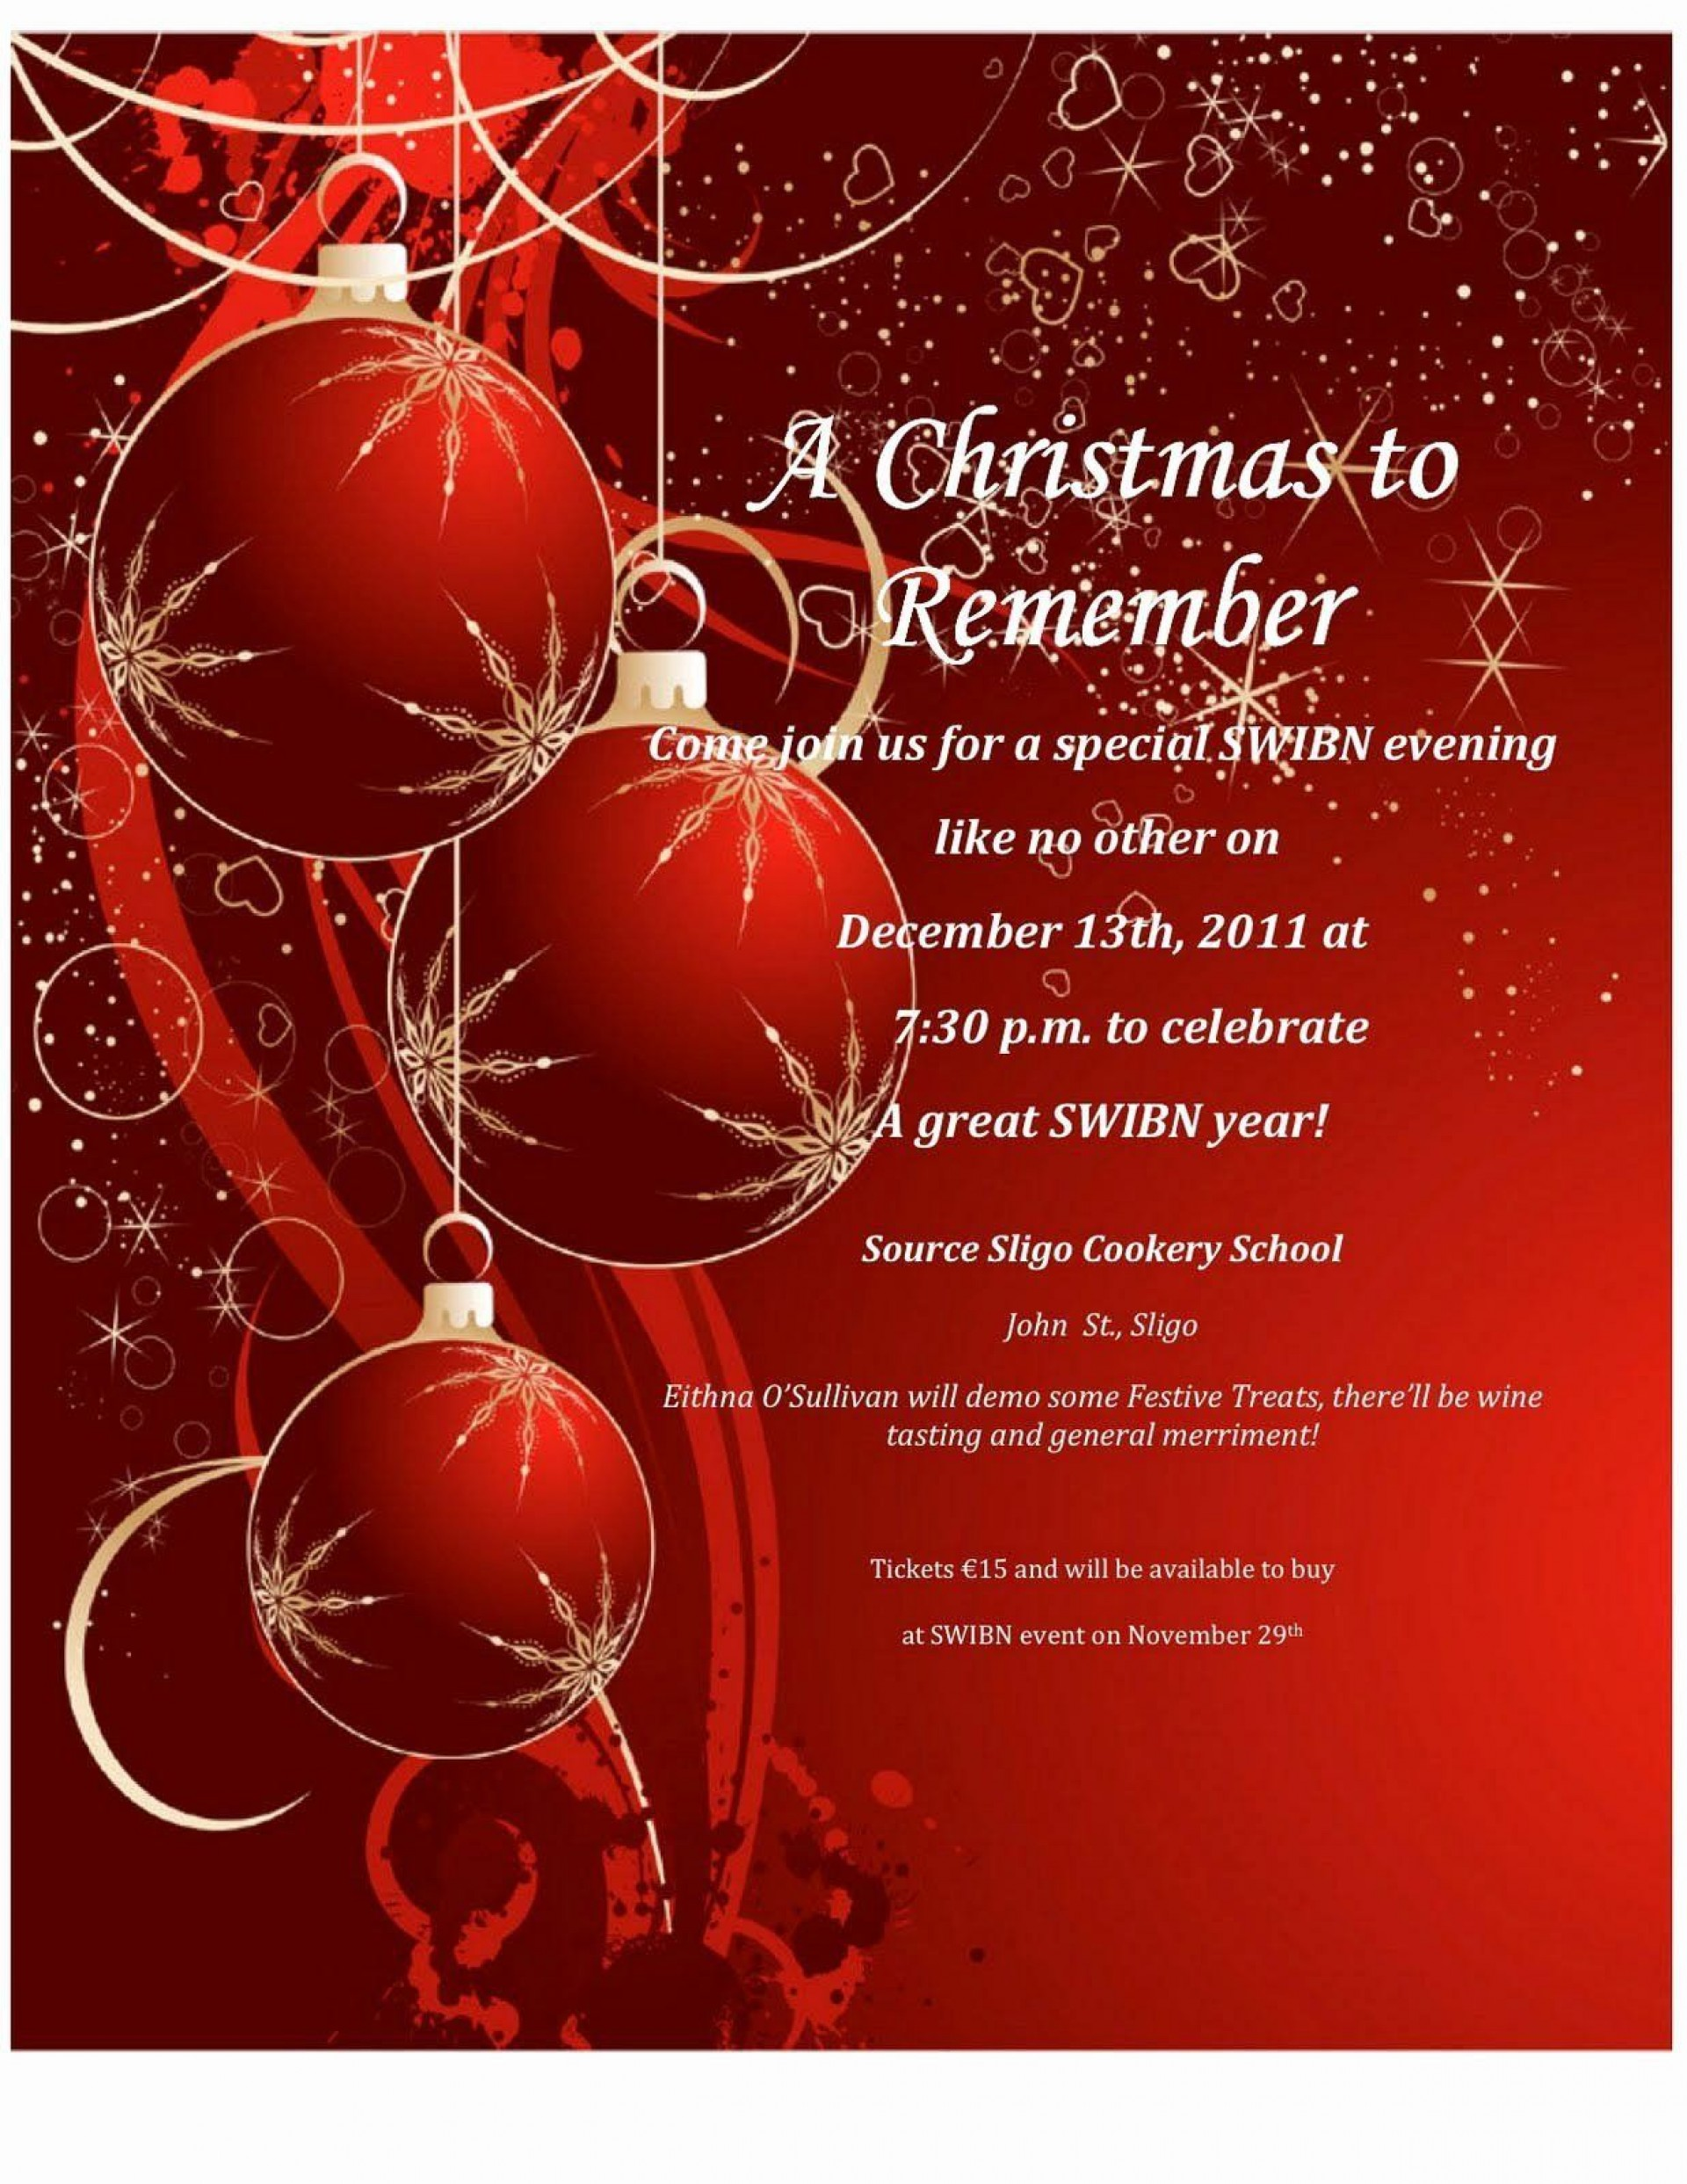 007 Wondrou Xma Party Invite Template Free Inspiration  Holiday Invitation Word Download Christma1920